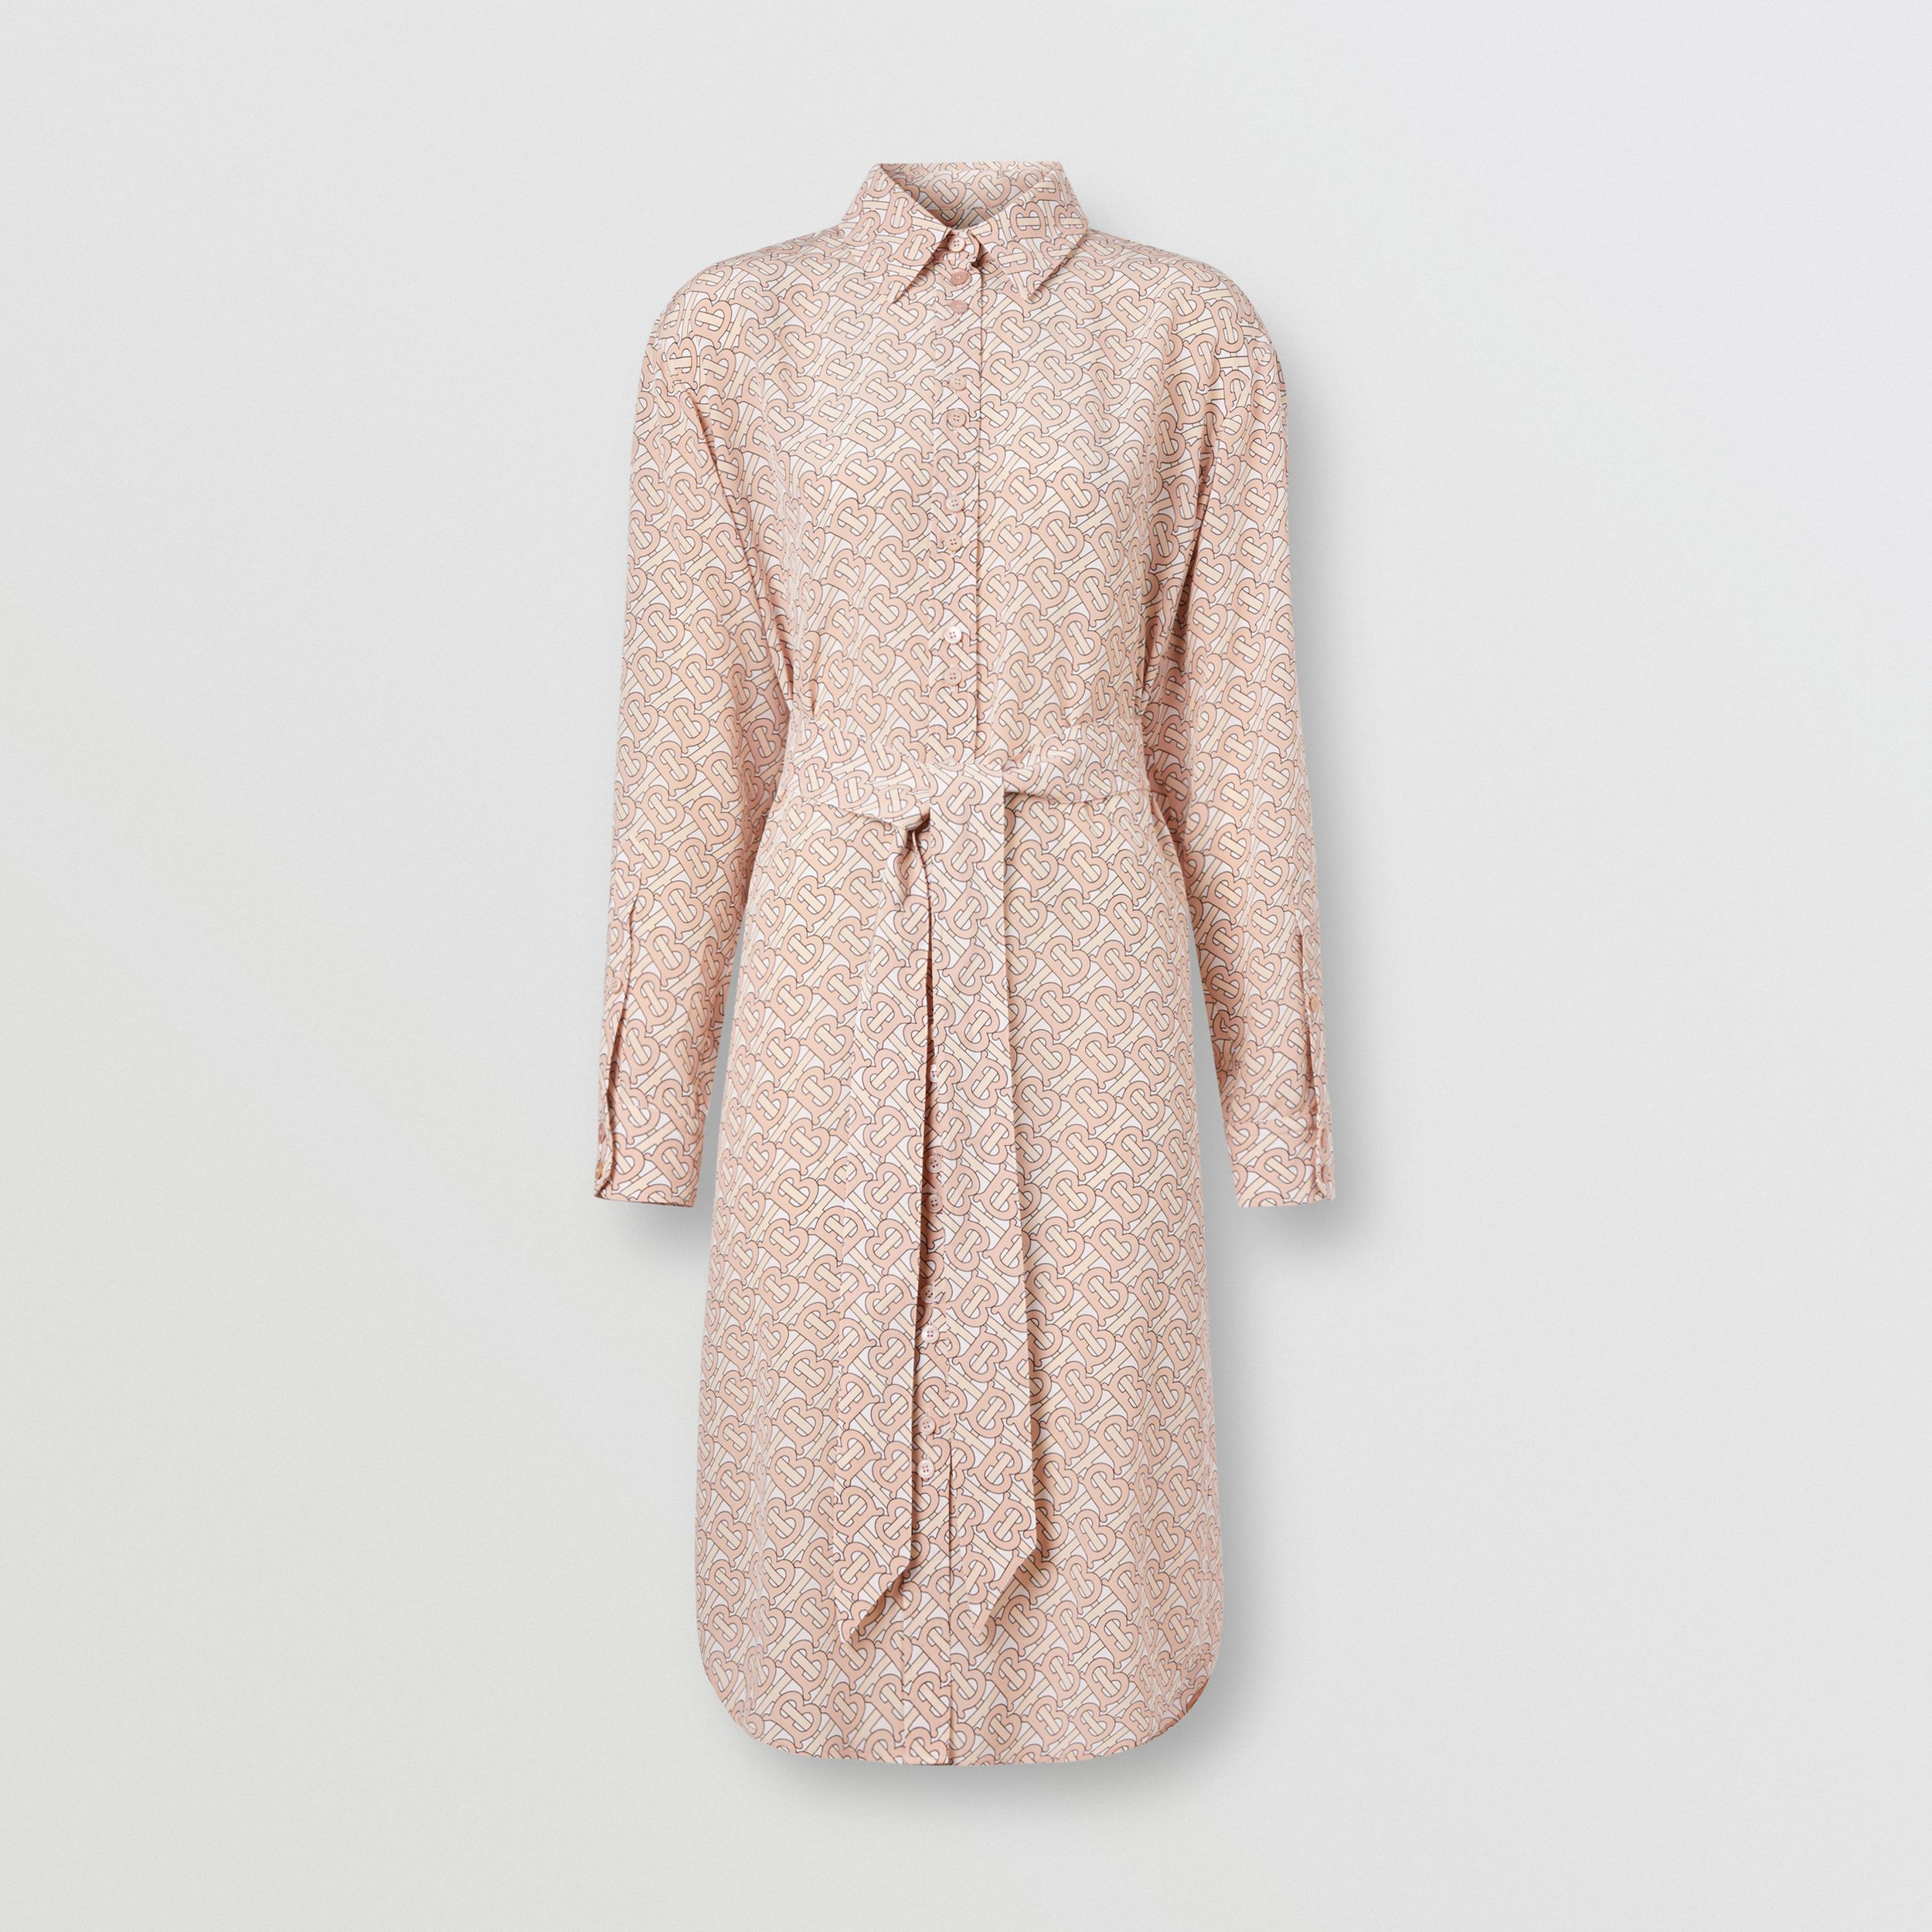 Monogram Print Silk Crepe De Chine Shirt Dress in Pale Copper Pink - Women | Burberry - 4